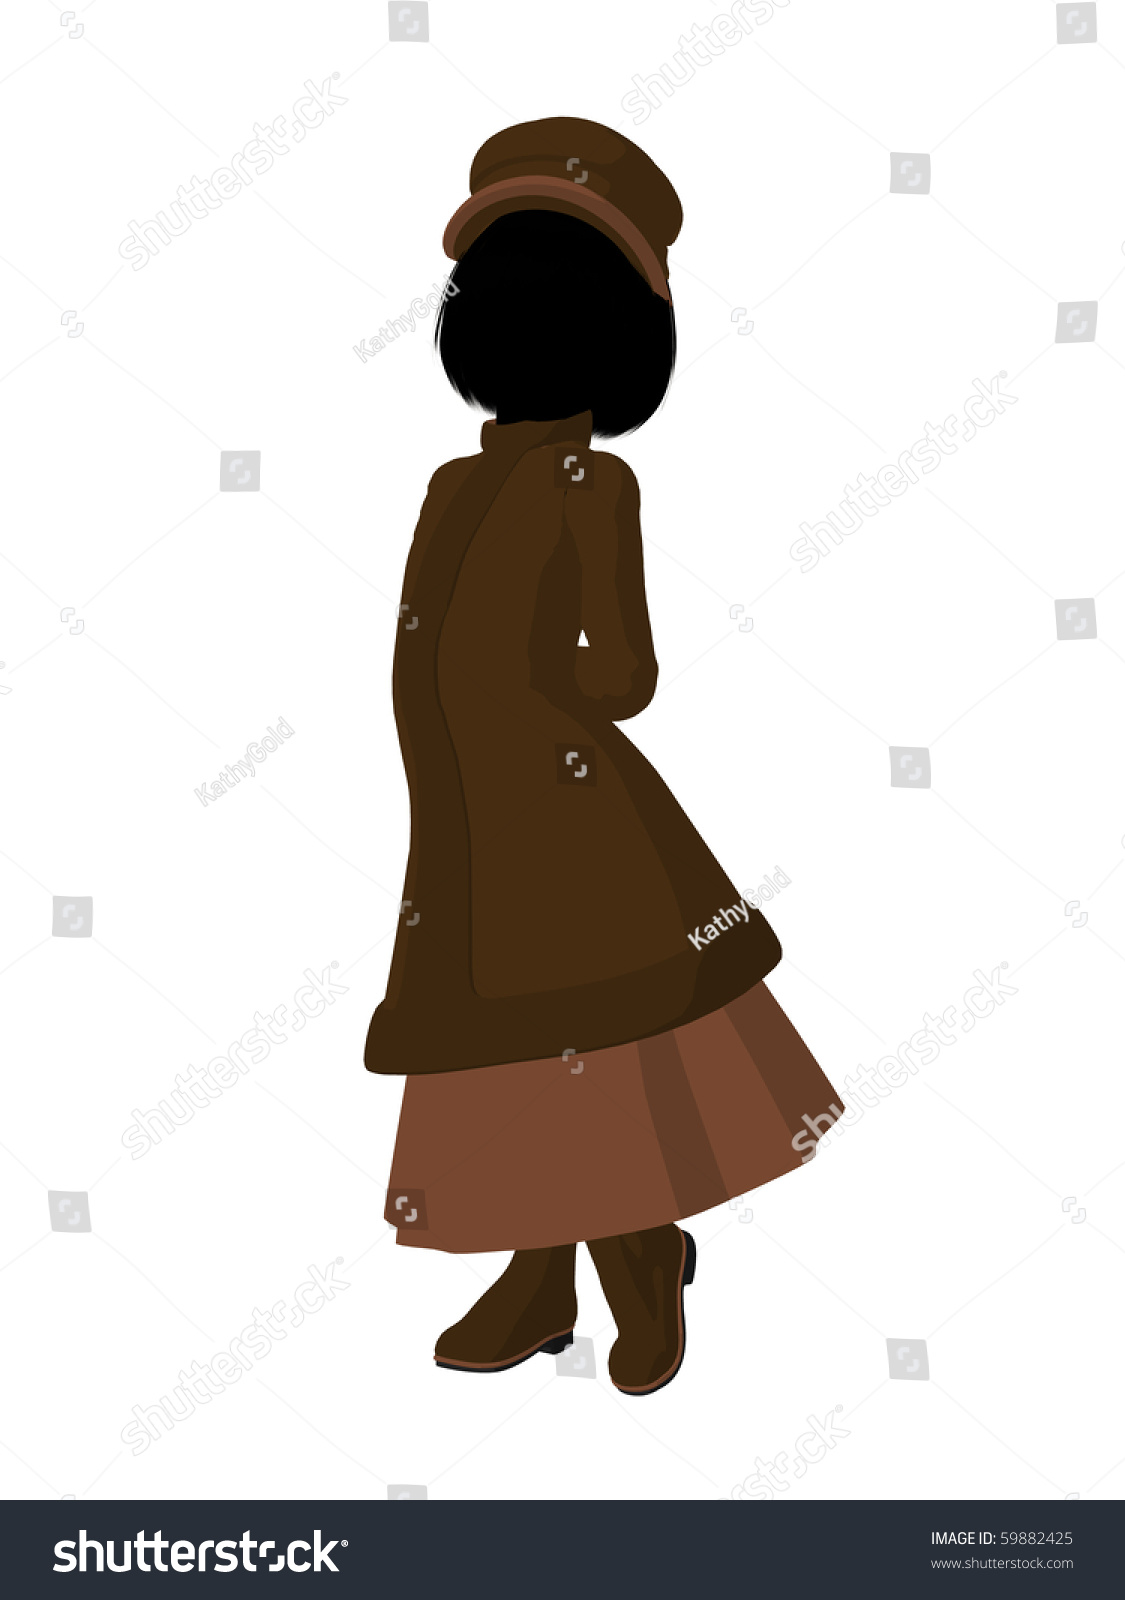 db83c822438 Victorian girl silhouette on a white background